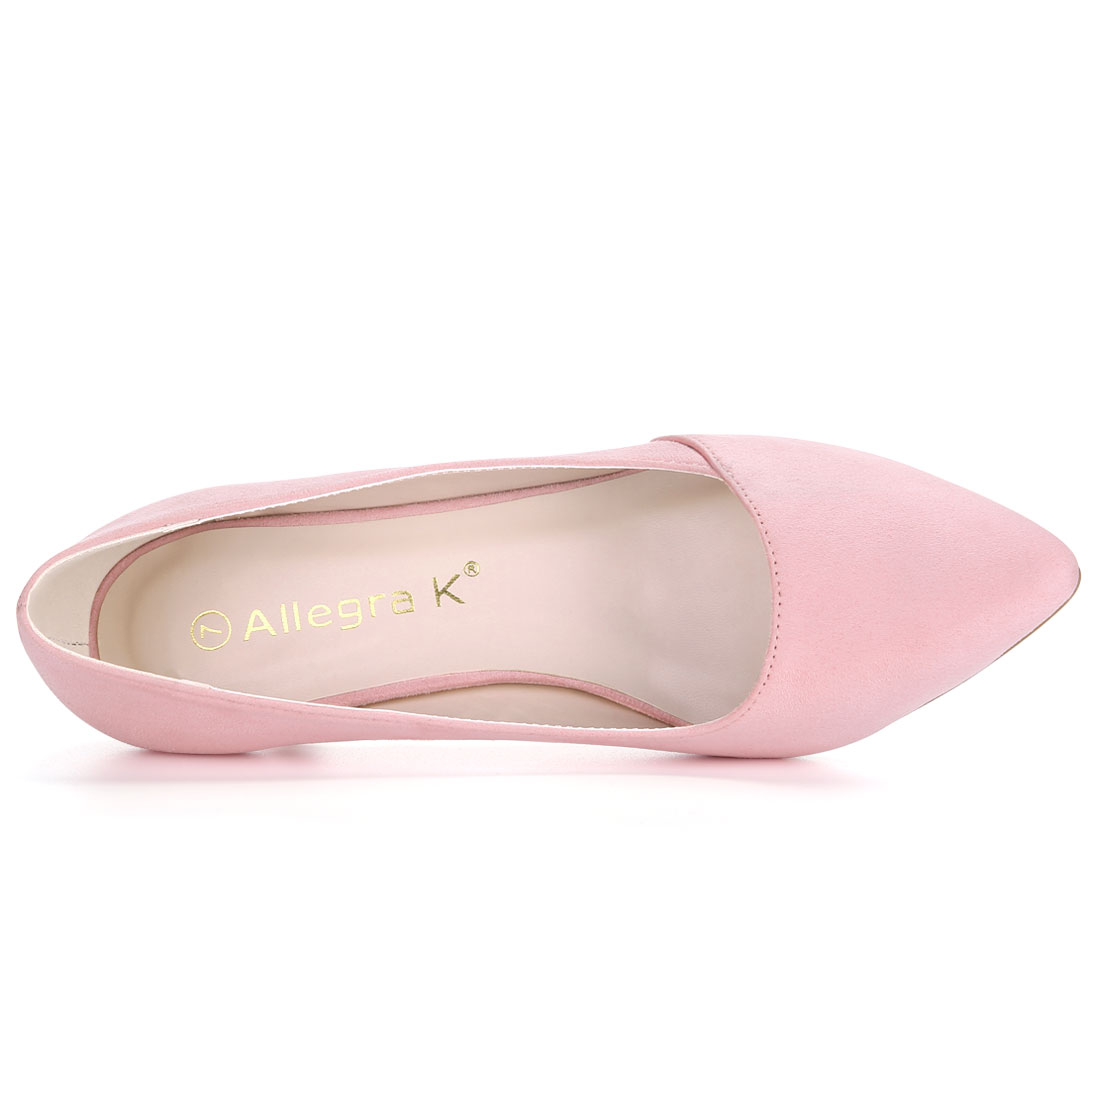 HF-27 Women Pointed Toe Mid Stiletto Heel Pumps Pink/US 9.5 - image 2 of 7